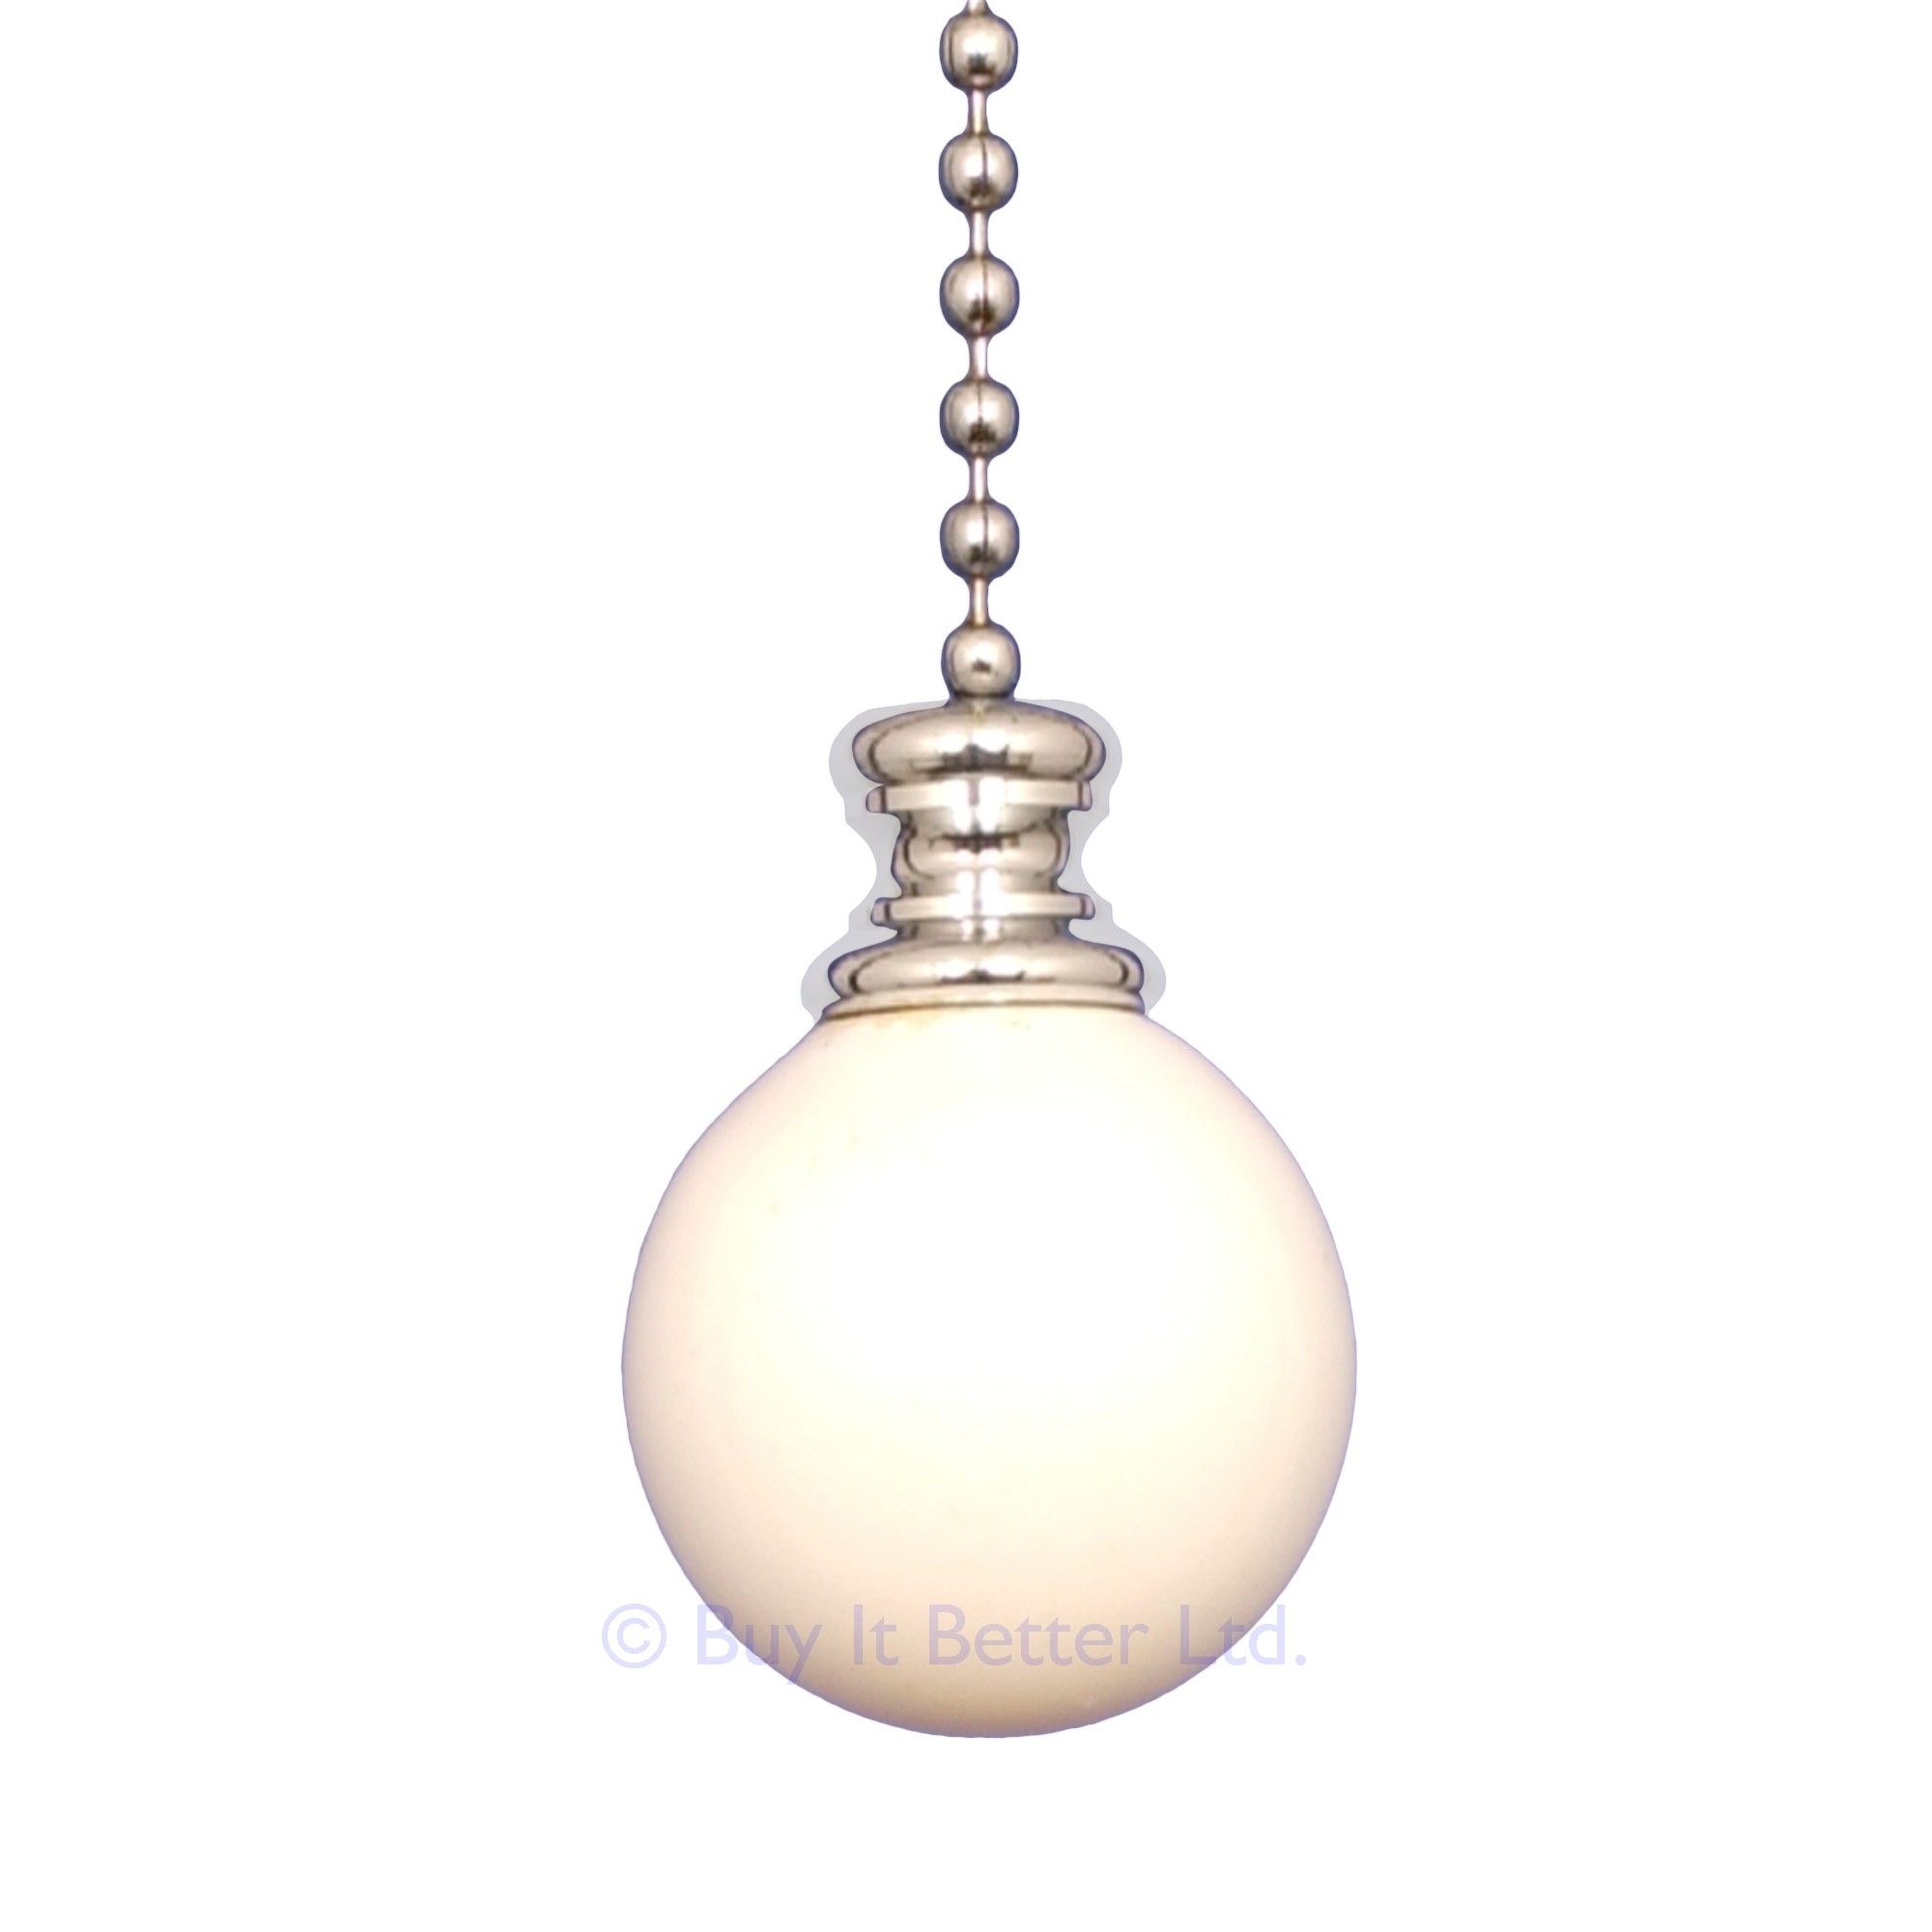 Bathroom Light With Pull Chain Light Pull Chain Cord Polished Chrome And White Ceramic Ball With